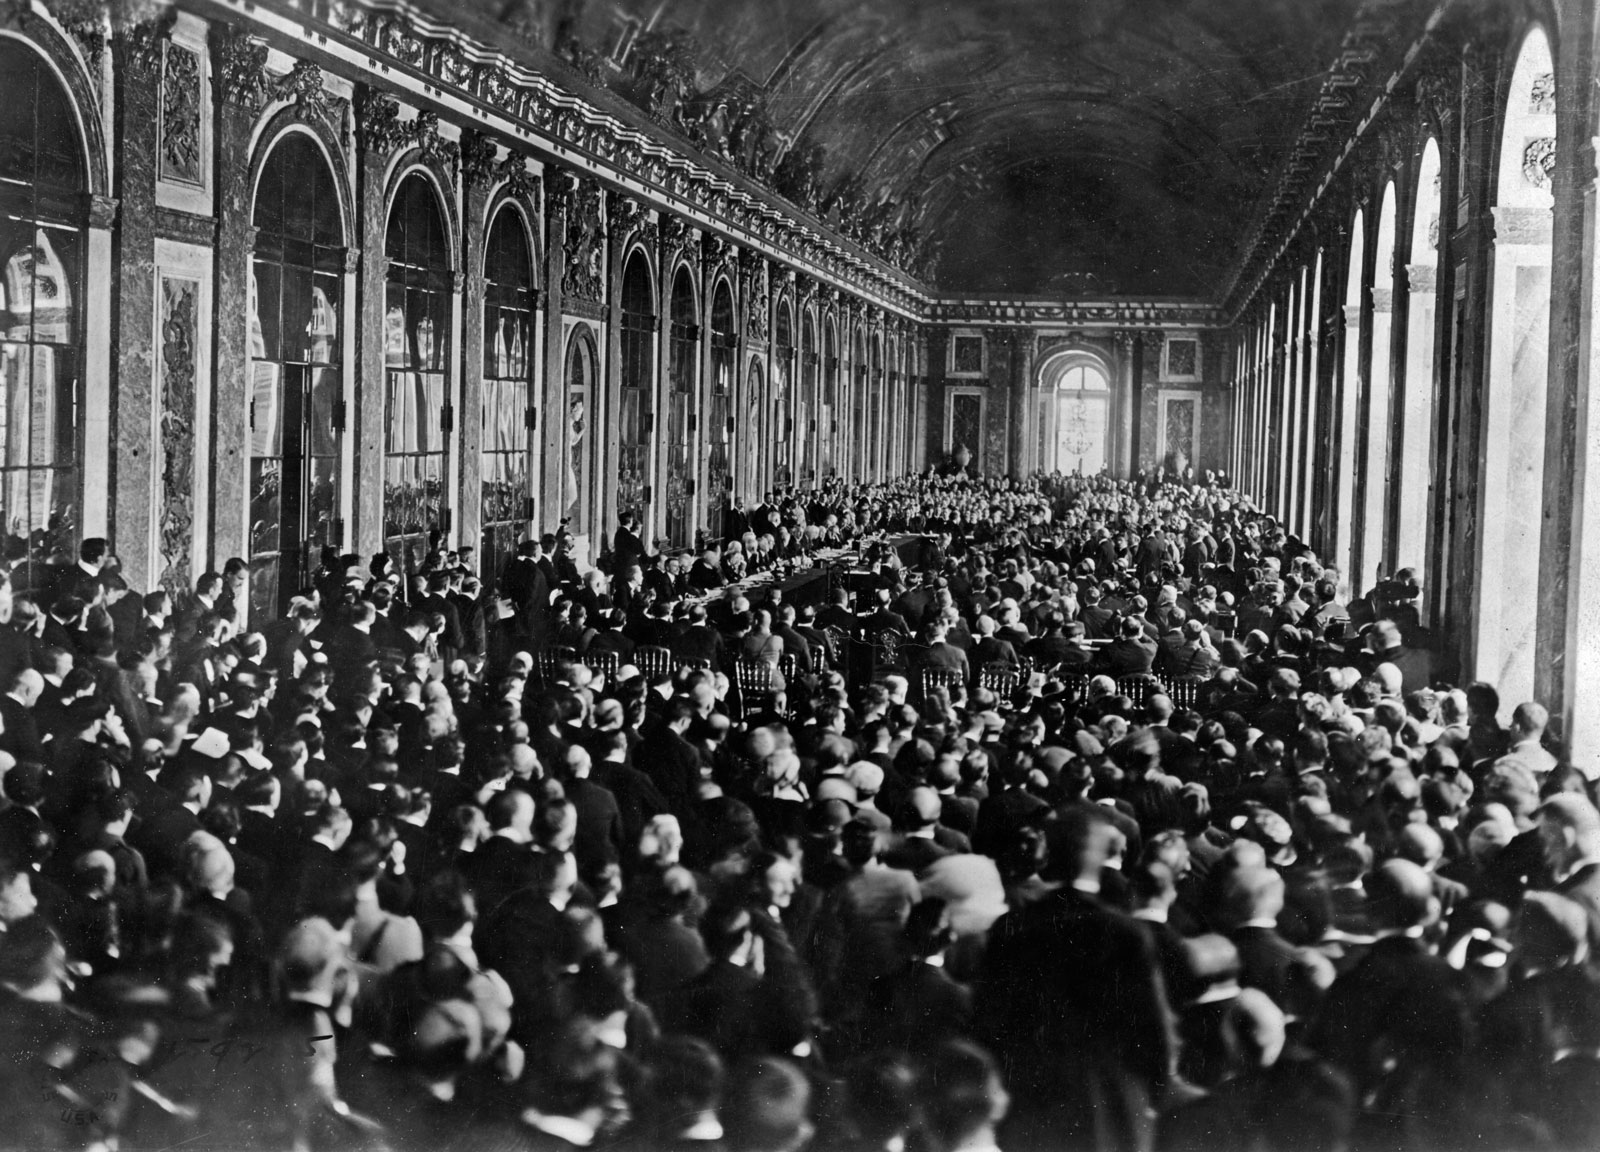 The signing of the Treaty of Versailles on June 28, 1919 in the Hall of Mirrors of the Palace of Versailles